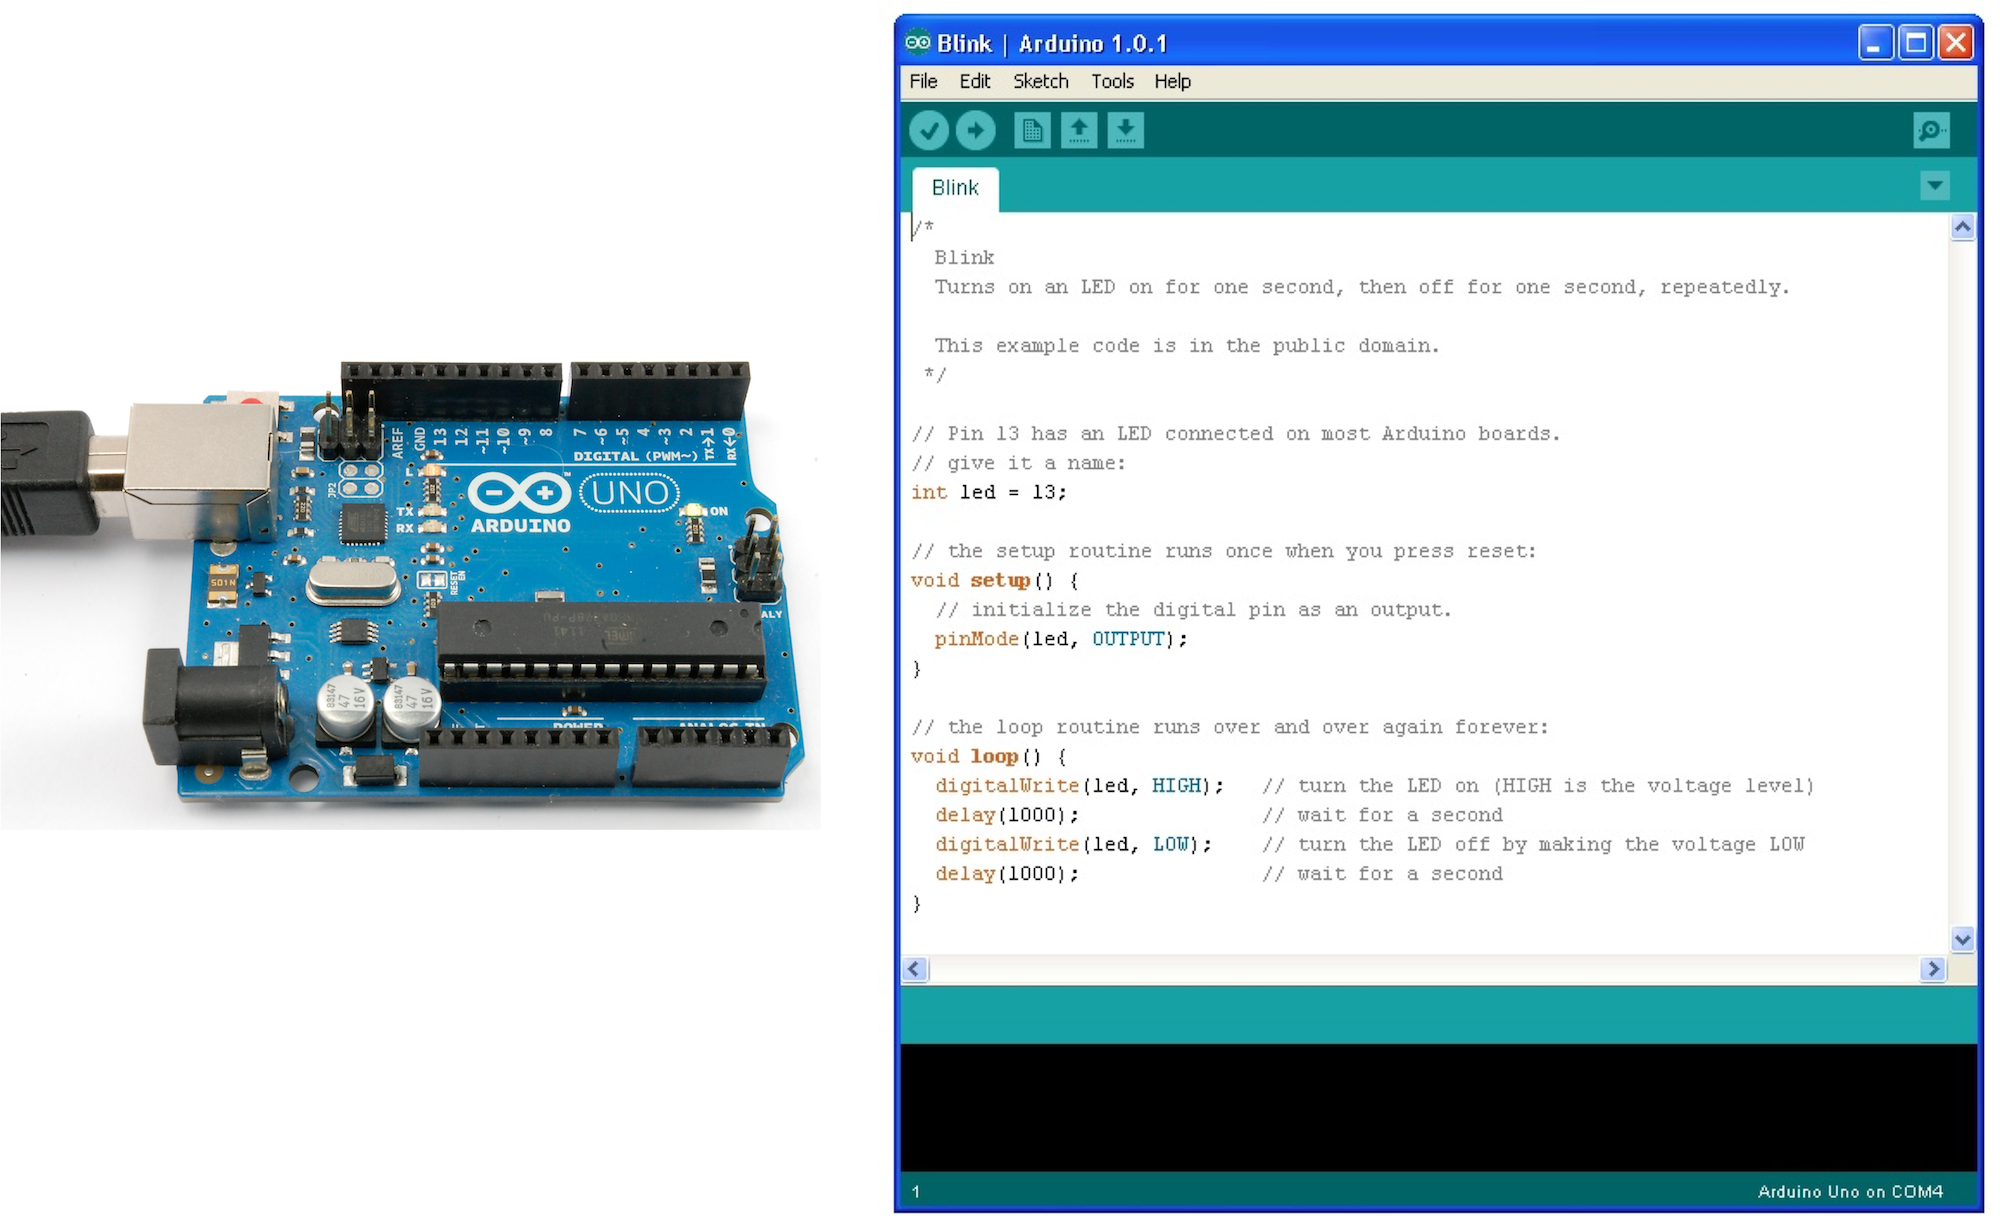 learn_arduino_overview.png